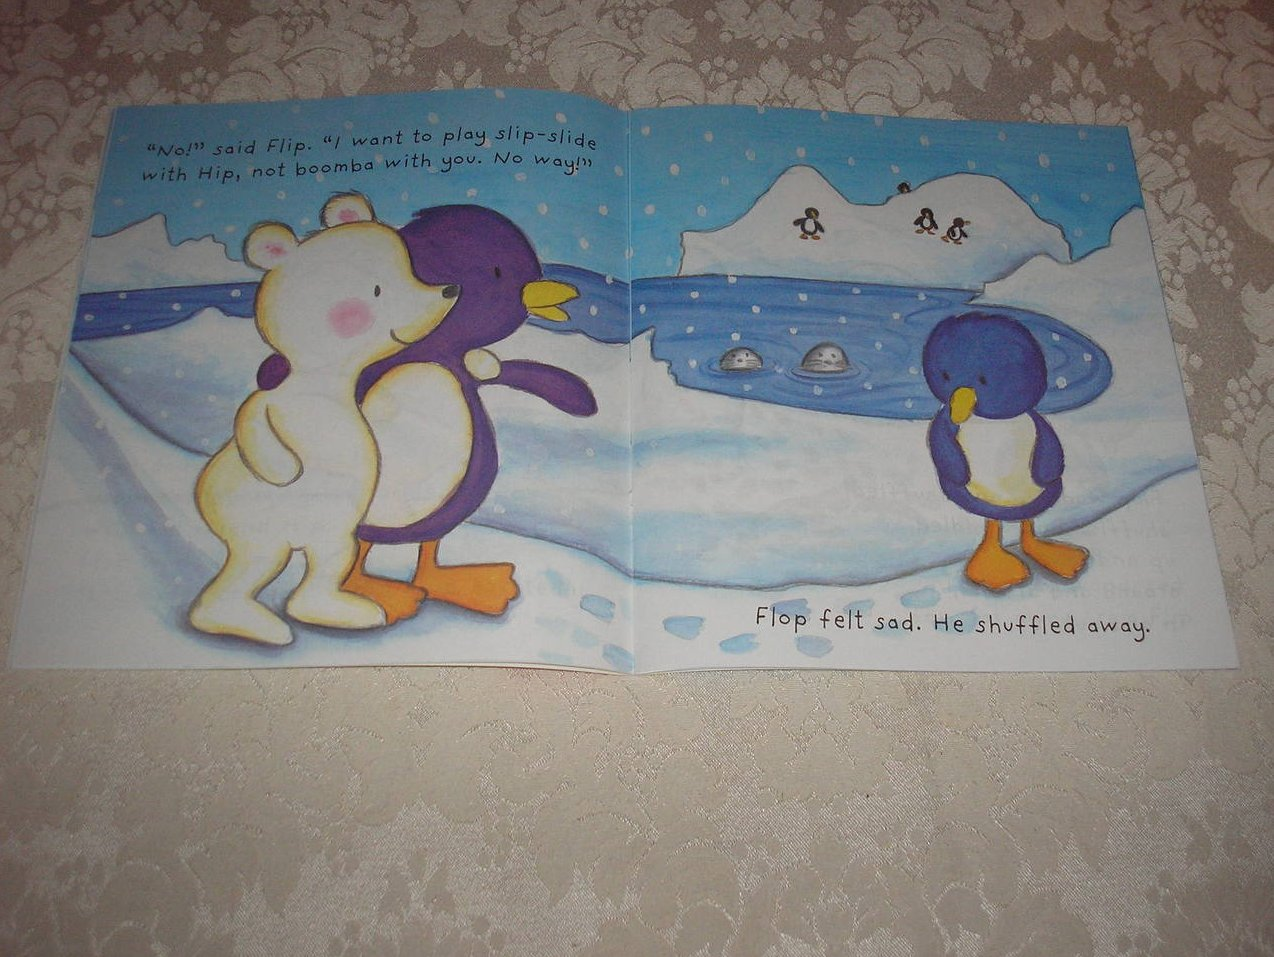 Image 3 of Flip and Flop Dawn Apperley Brand New Softcover